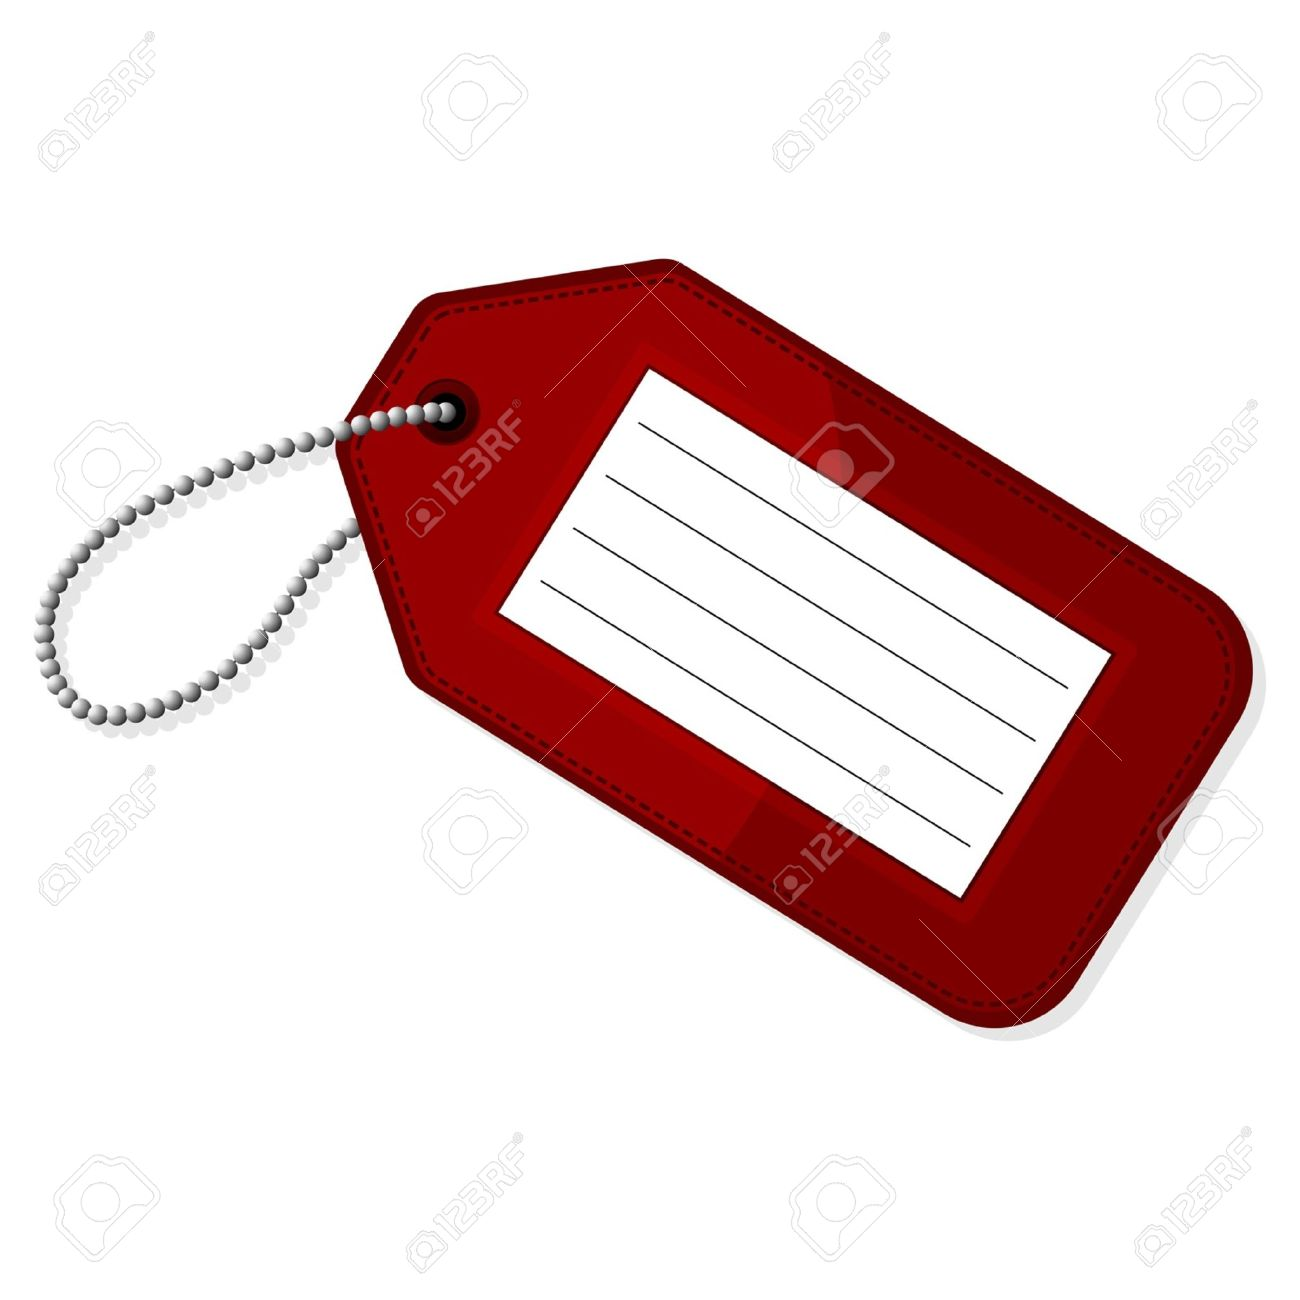 Red Luggage Tag With Copy Space Over White Background Royalty Free